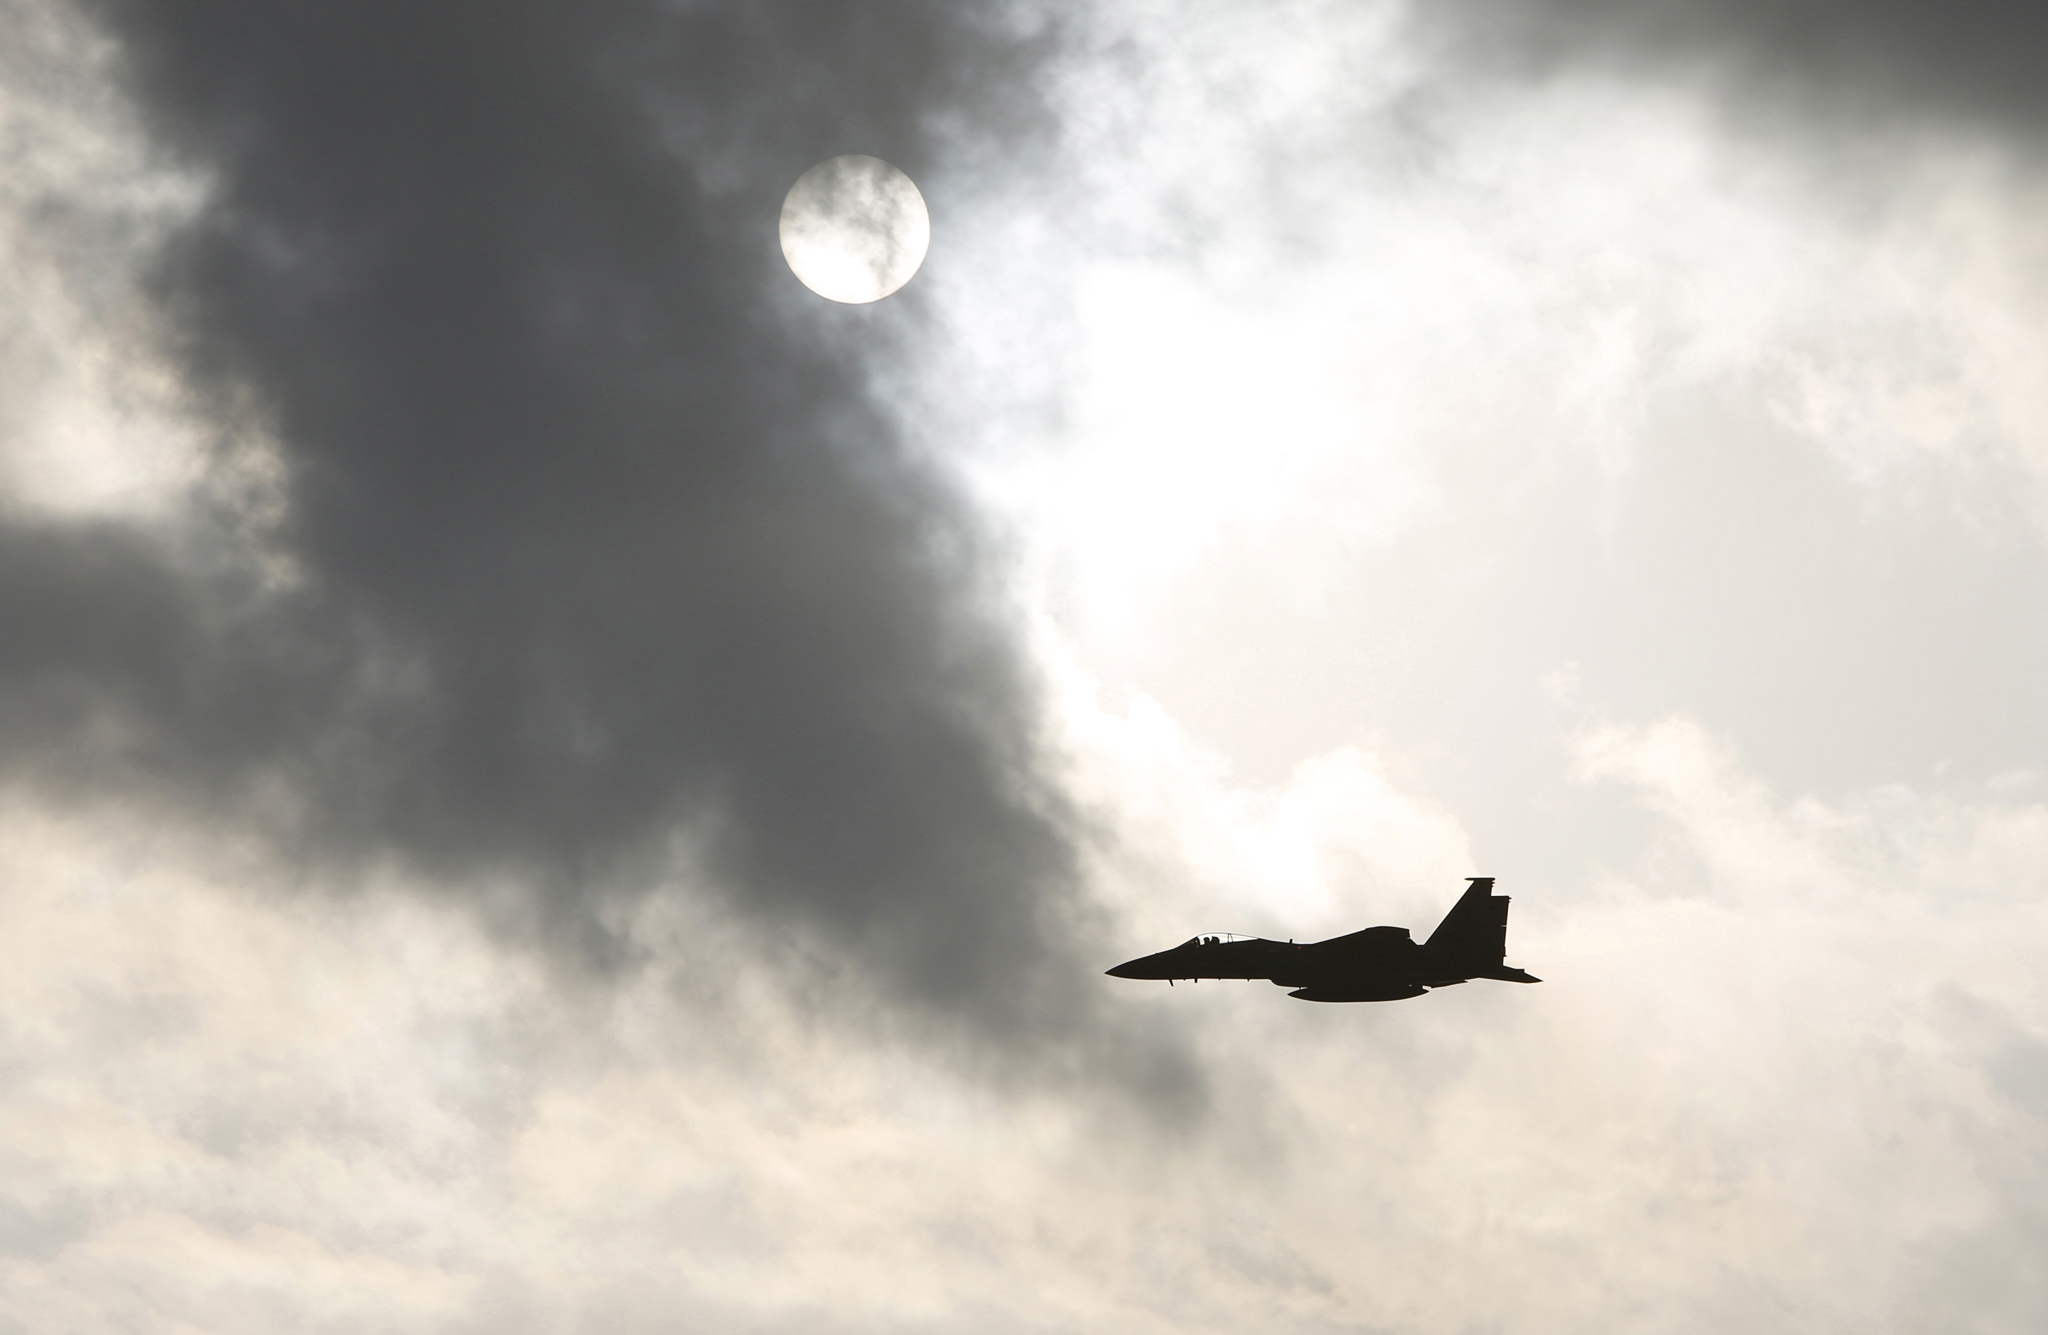 A U.S. Air Force F15 fighter jet takes off from Kadena Air Base in Okinawa, southwestern Japan